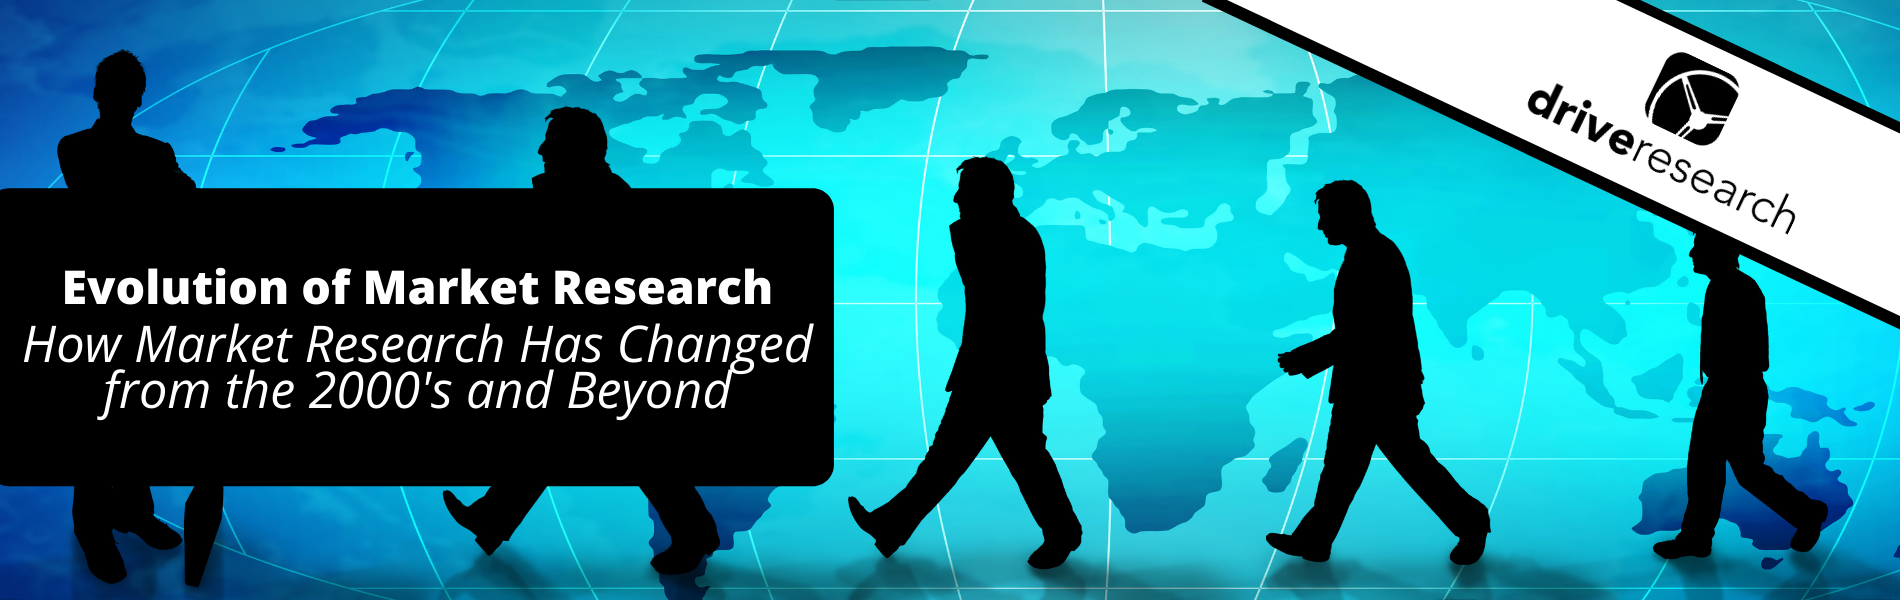 How Market Research Has Changed from the 2000's and Beyond